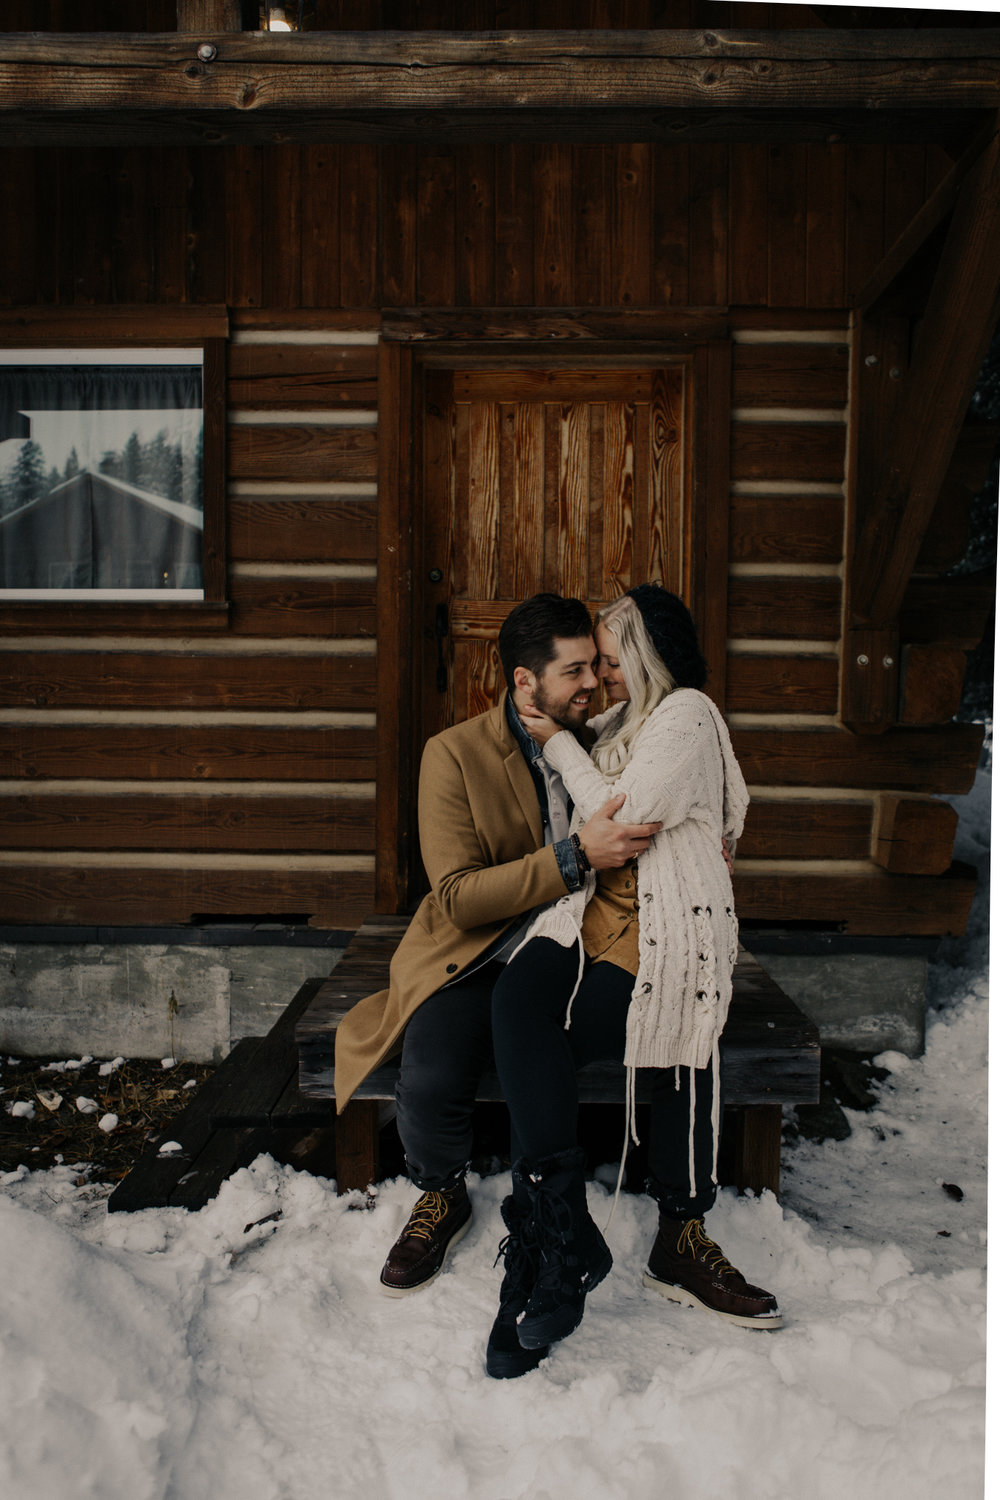 Snowy Cabin Couple Picture